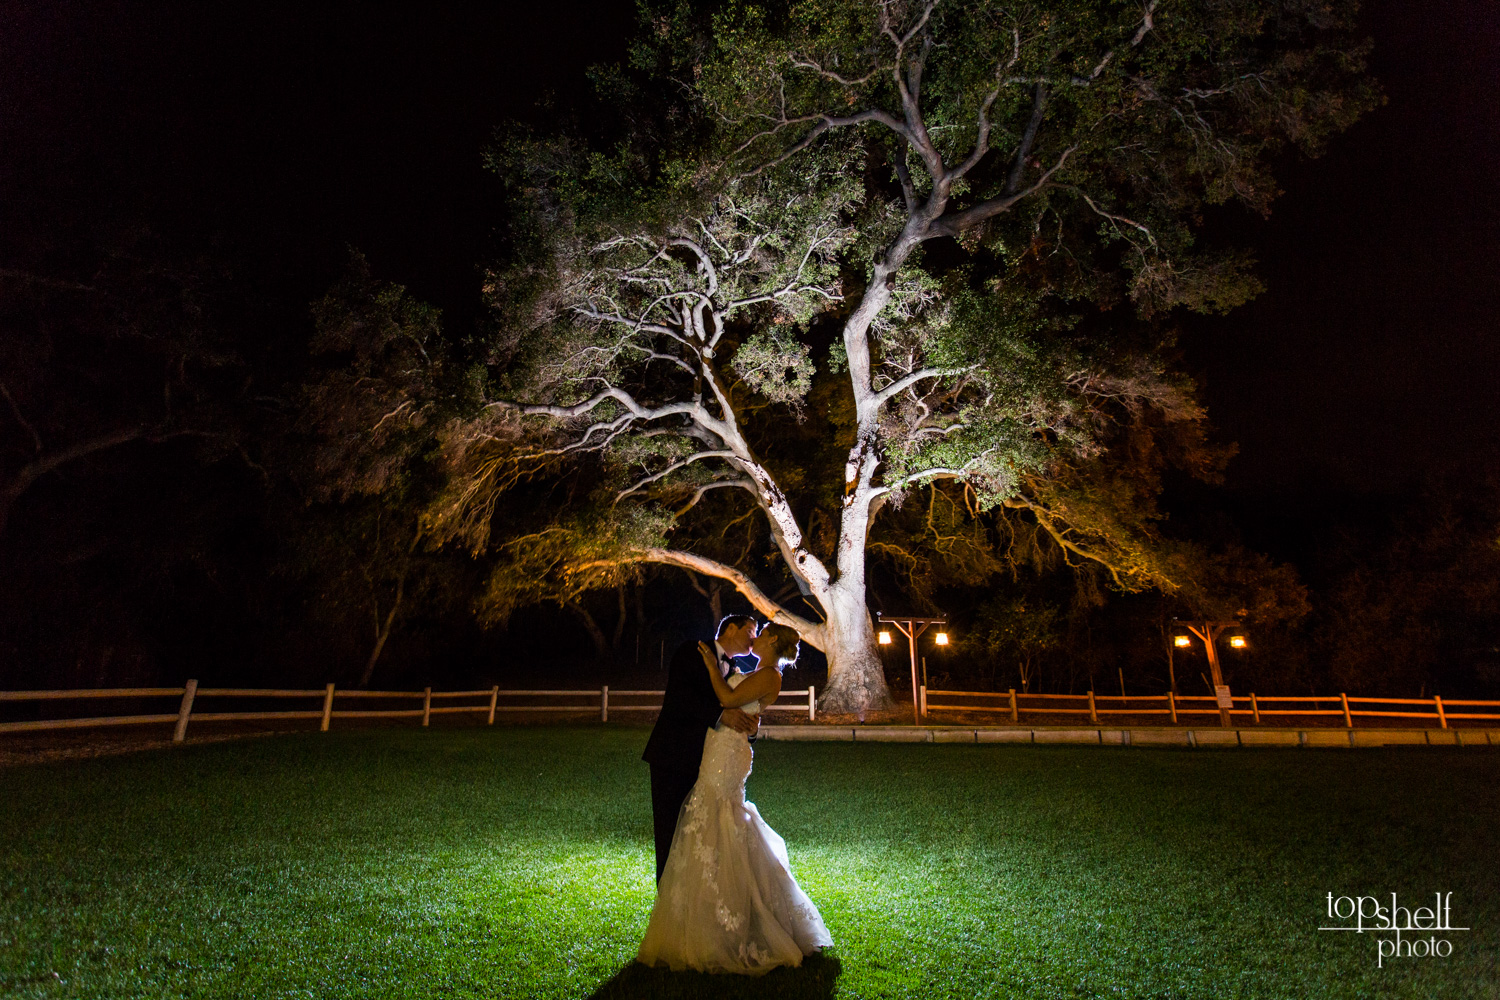 temecula-creek-inn-wedding-san-diego-top-shelf-photo-21.jpg